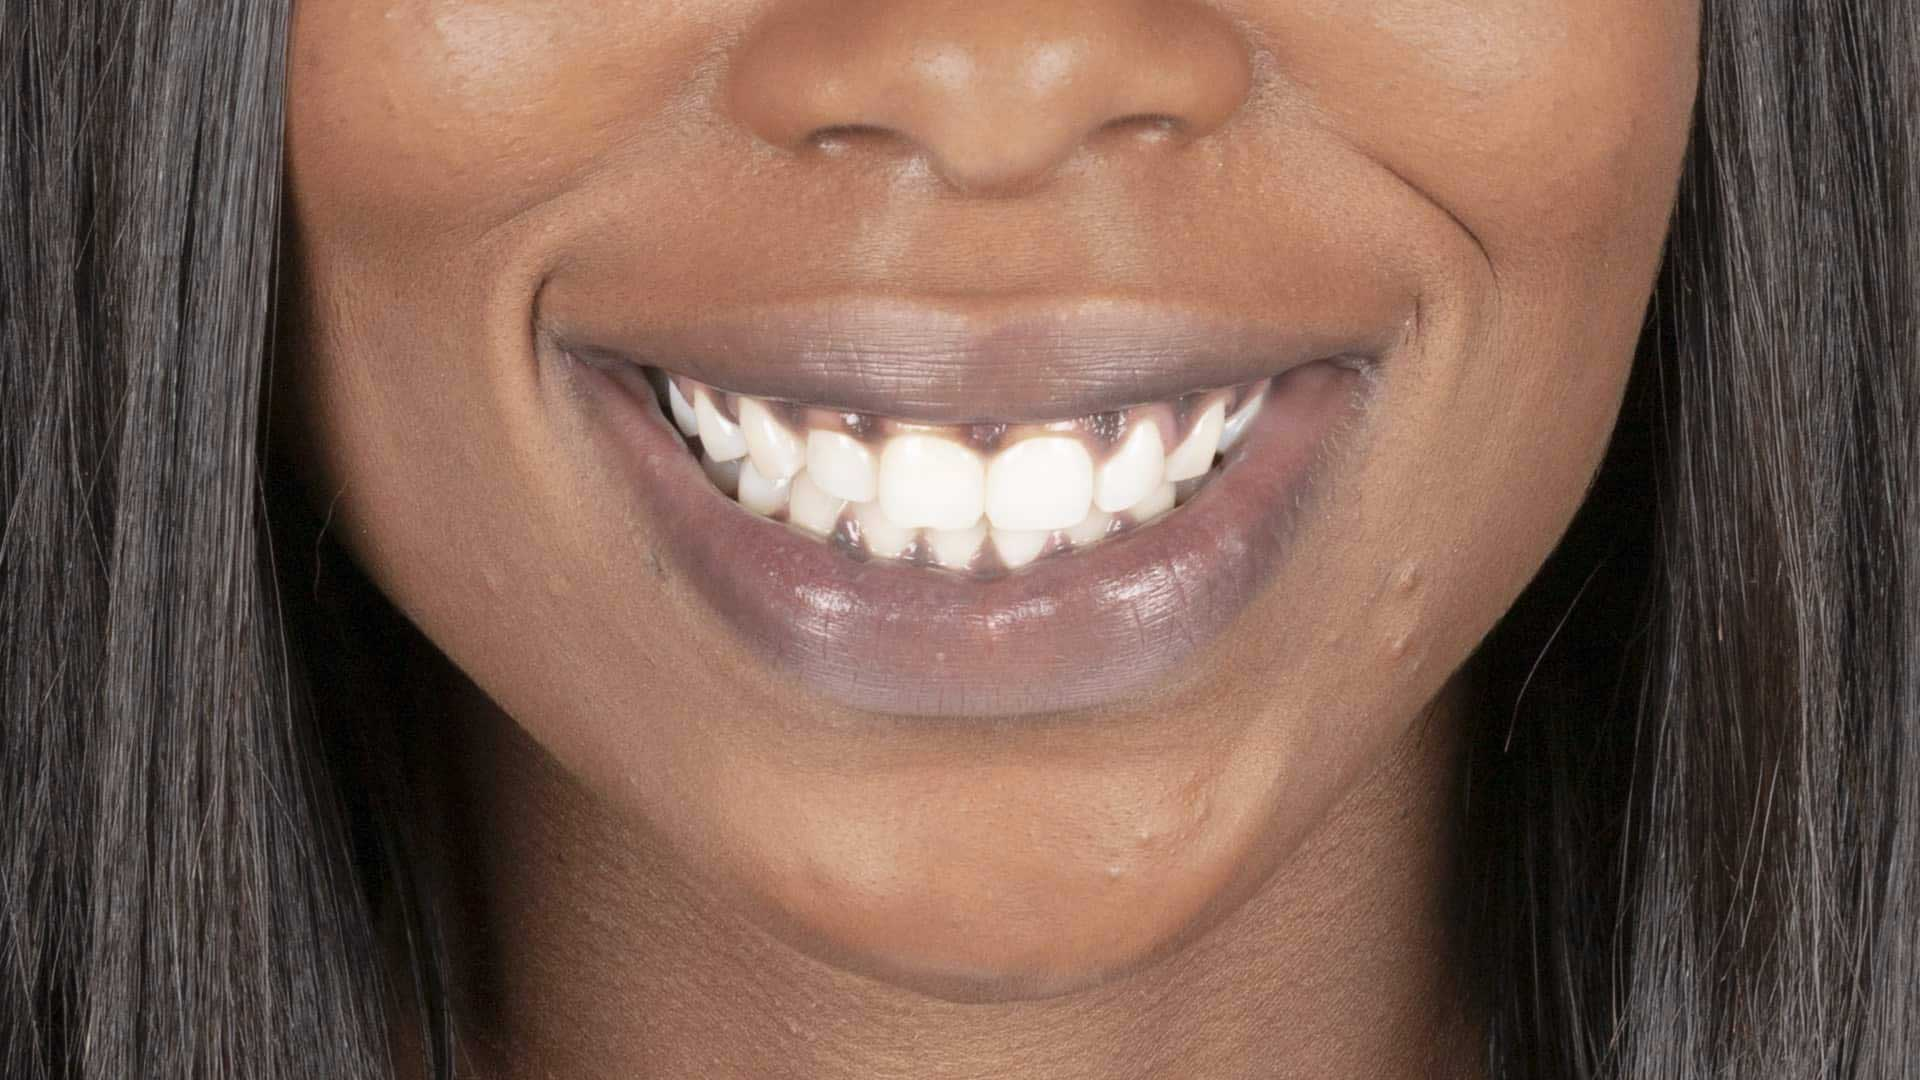 Why Do Some People Have Darker Gums?